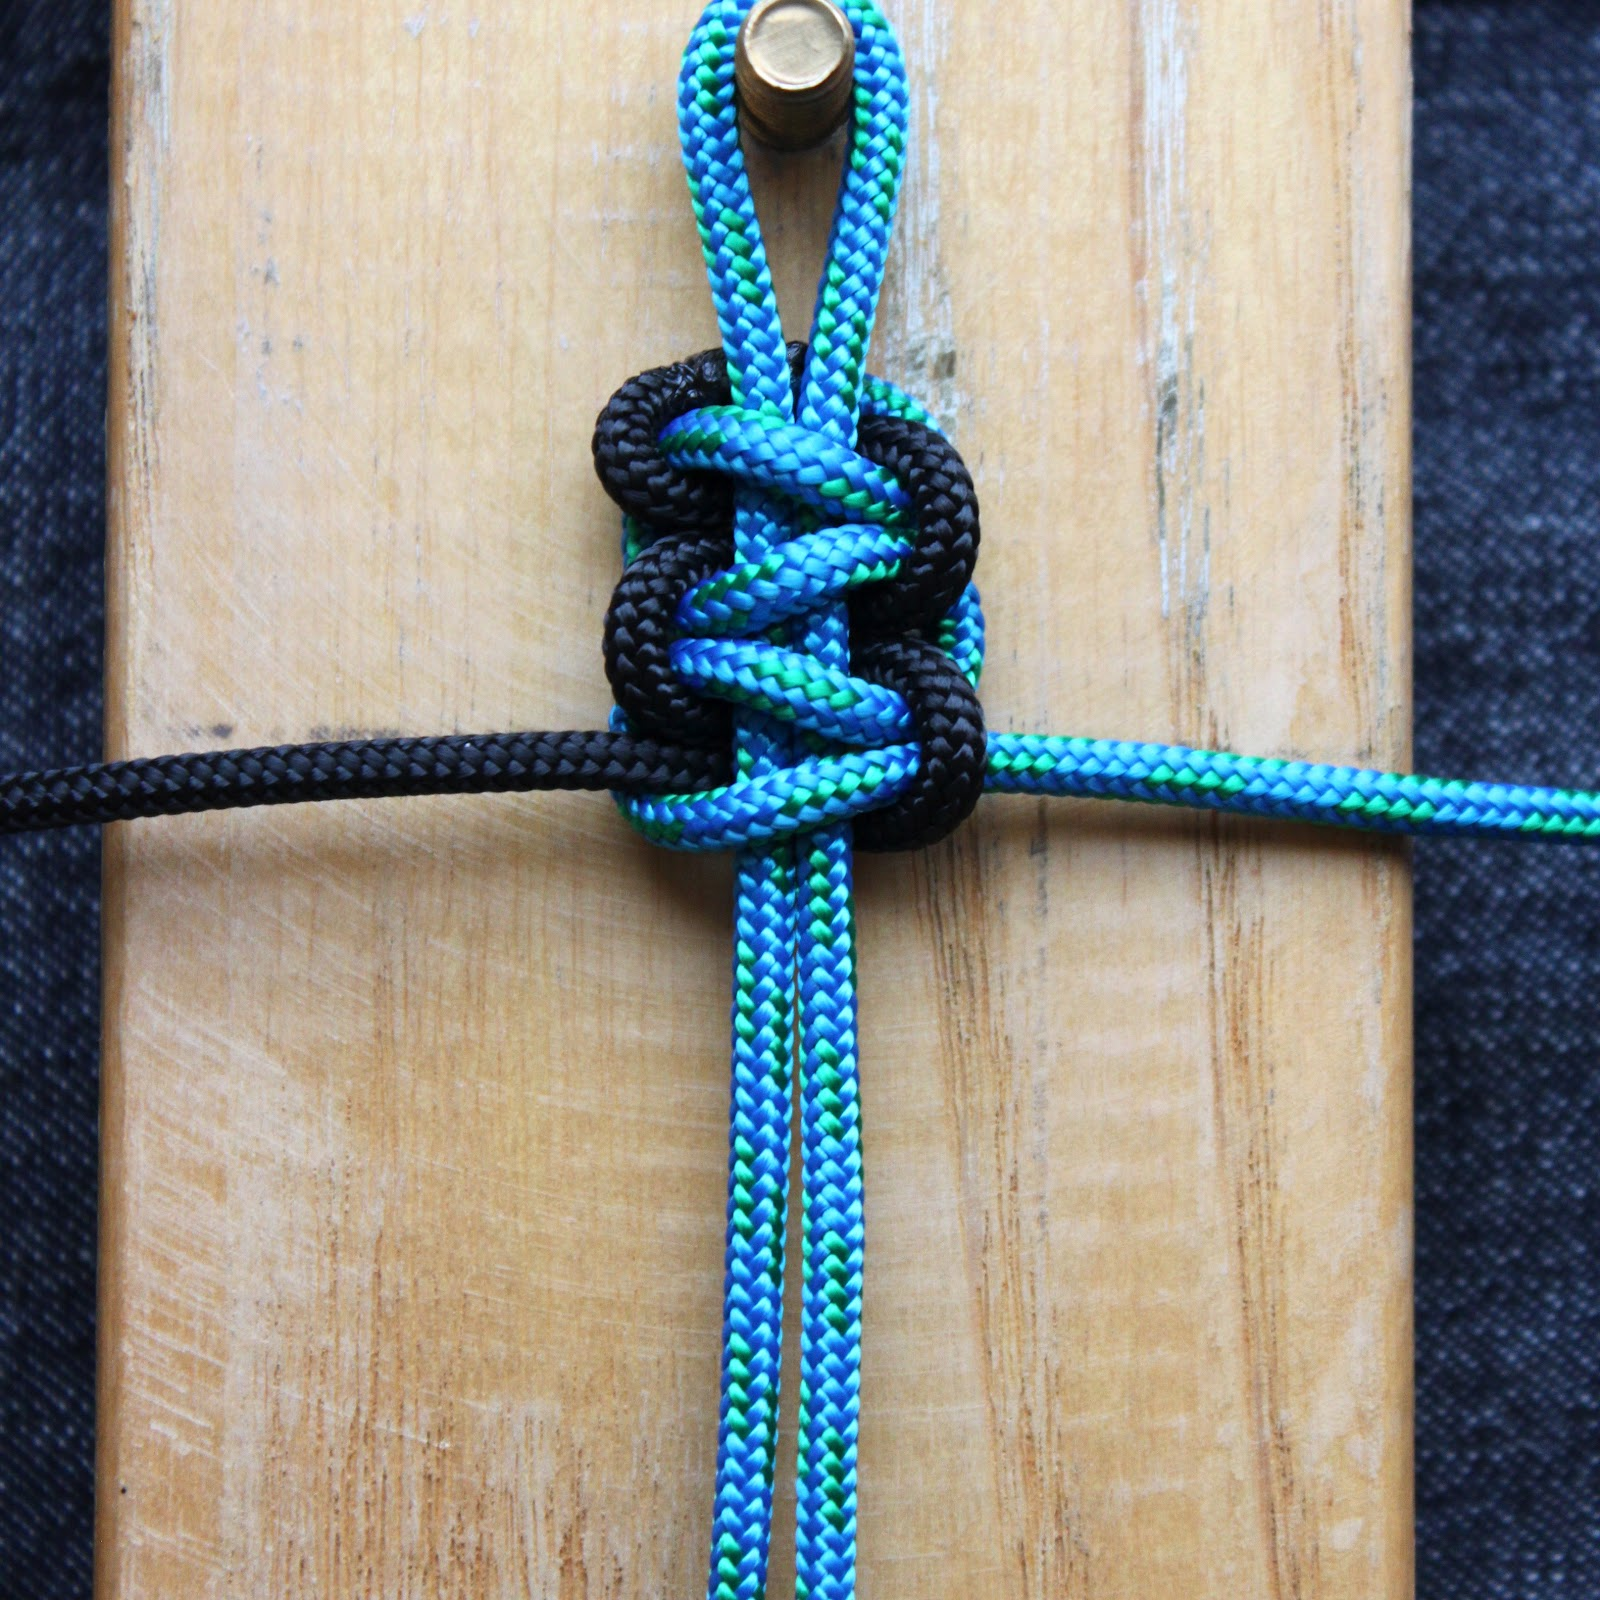 Love is in the details paracord survival bracelet tutorial for Paracord projects